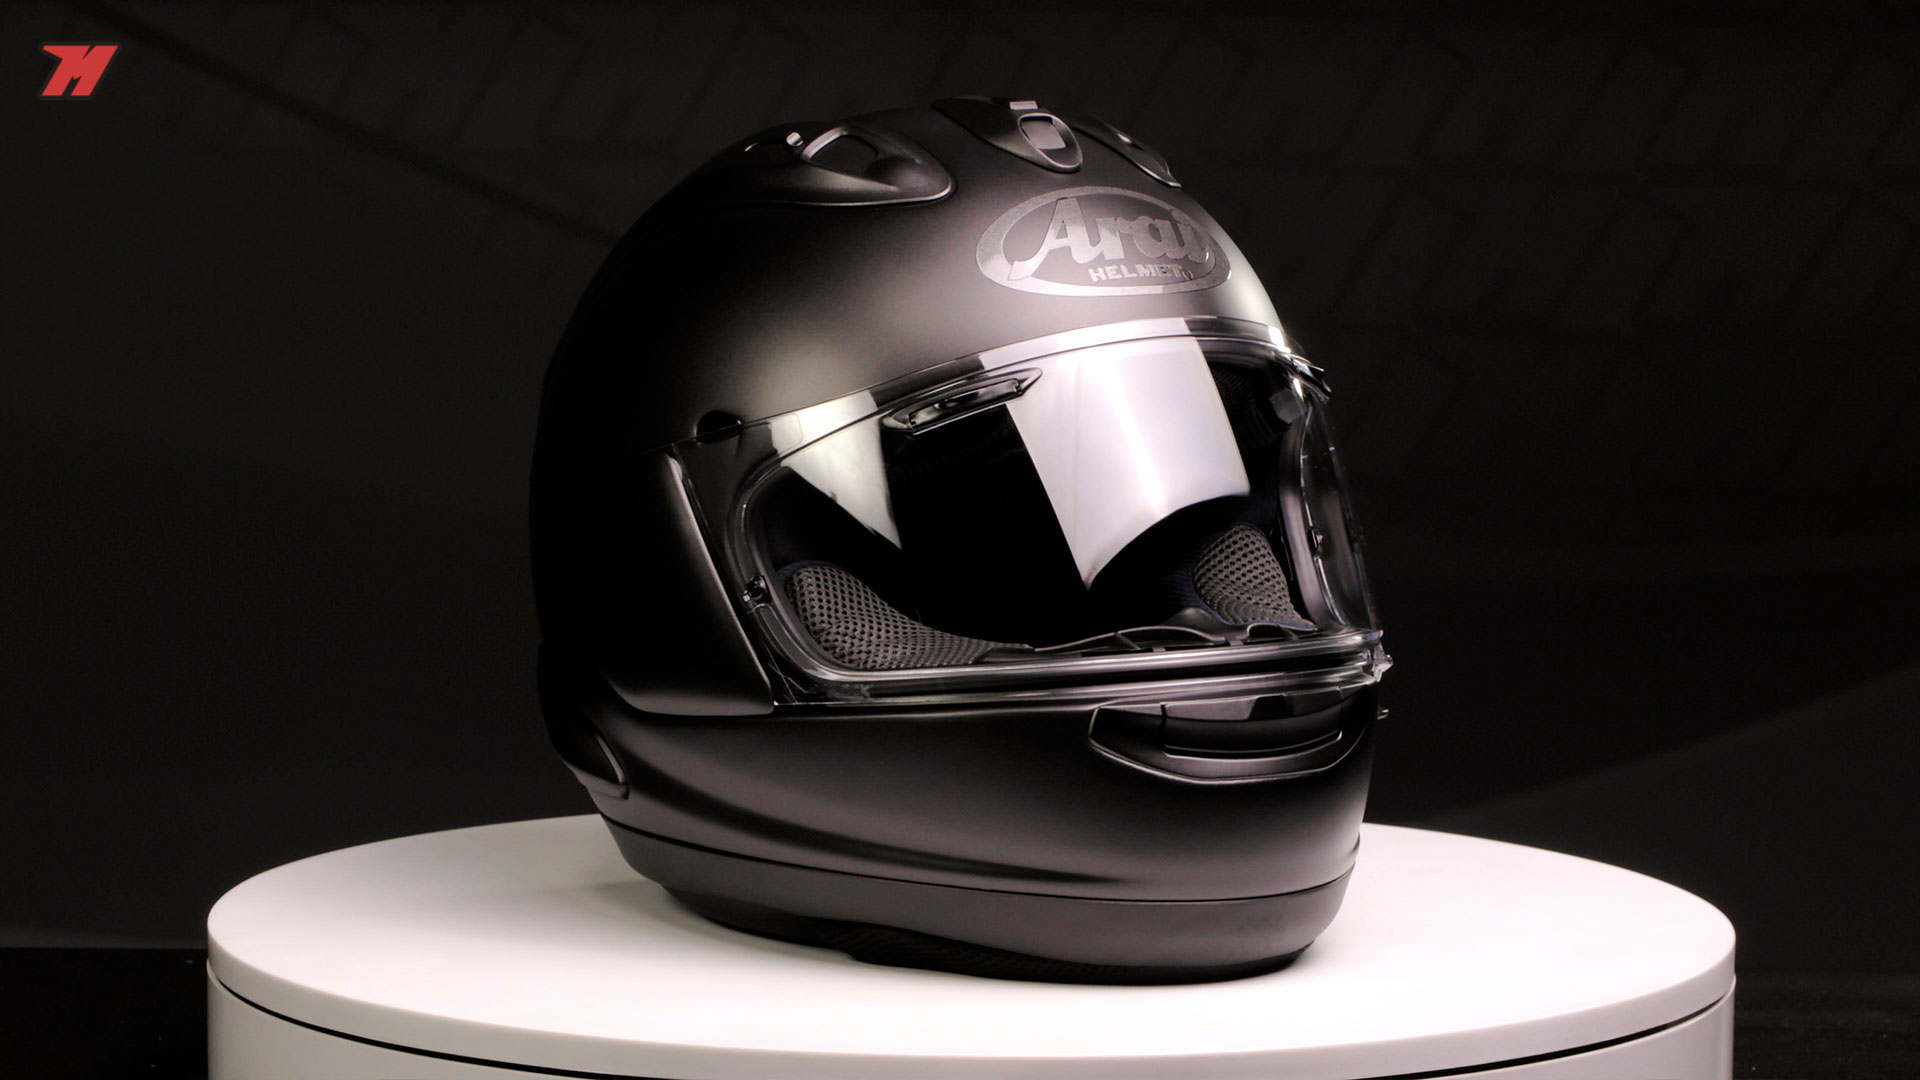 102a899803a4d Here is the Arai RX-7V, the best Arai motorcycle helmet of the range. The  most sporty, worn by all pilots Arai.